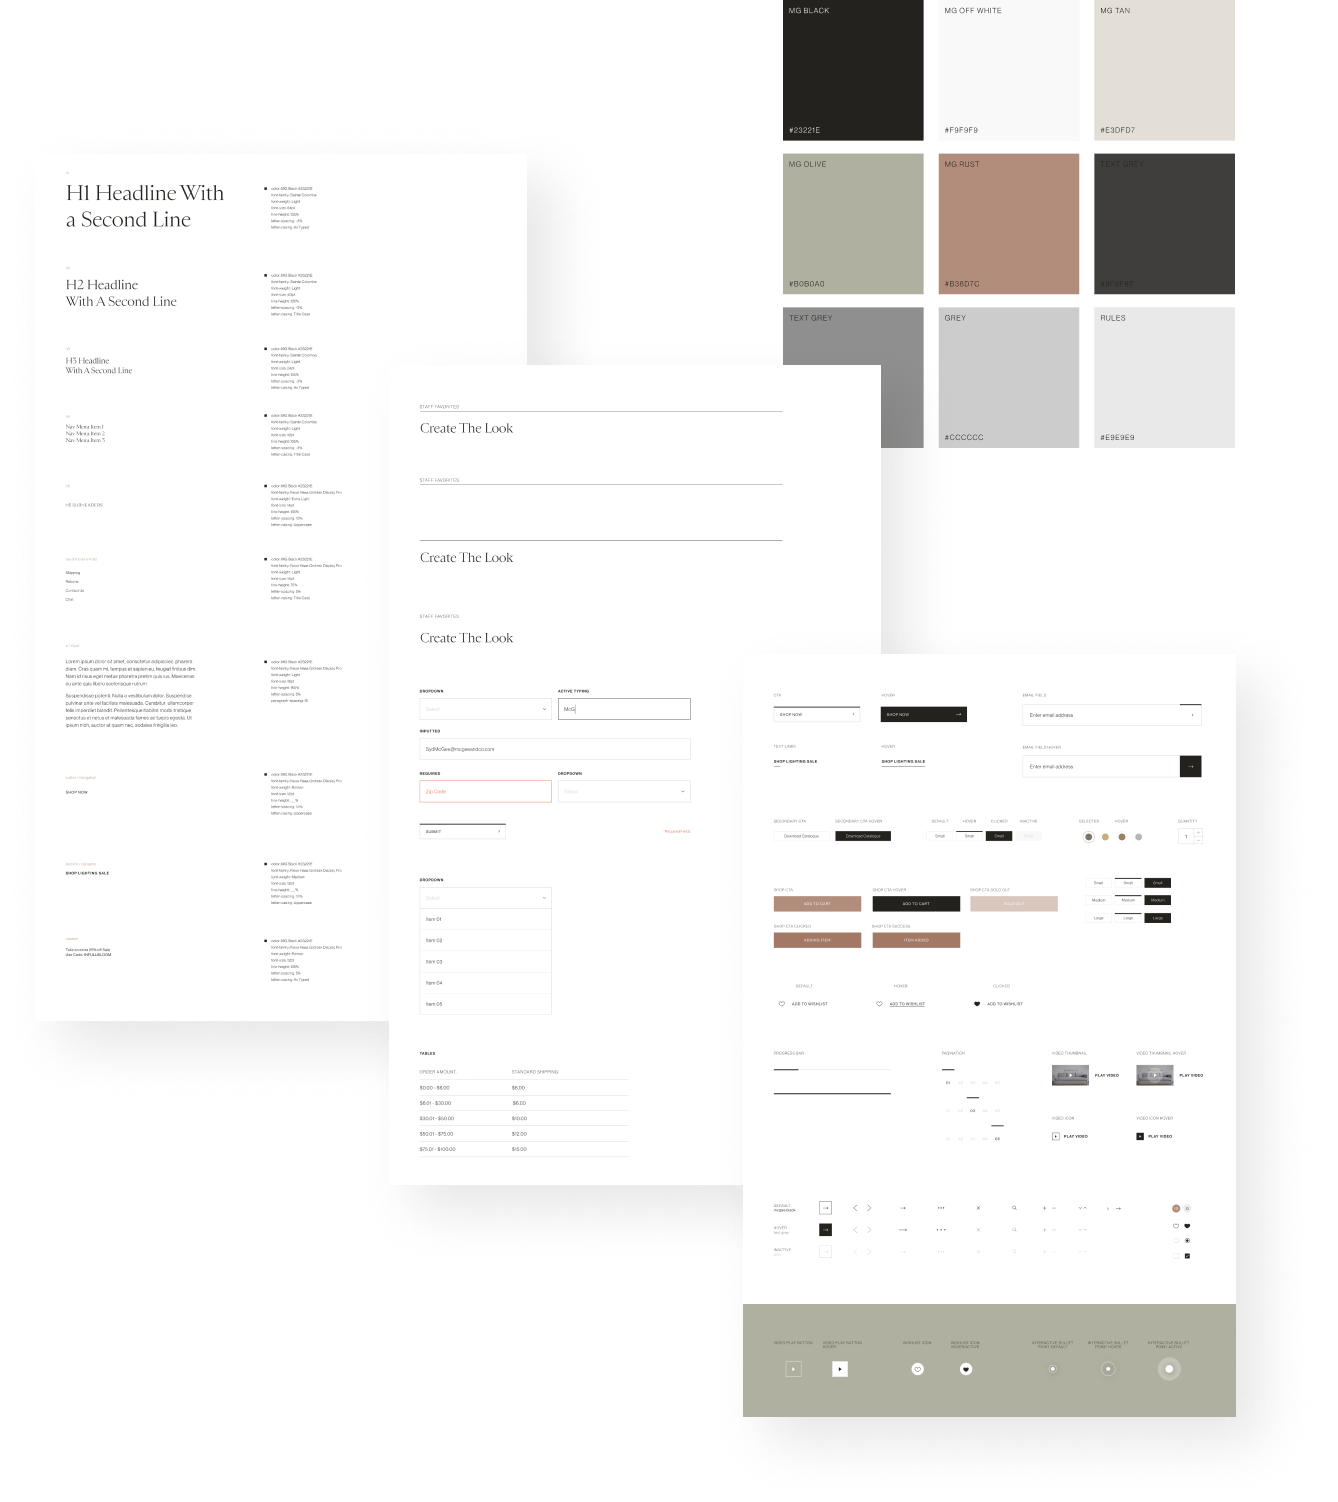 McGee & Co. Styleguide